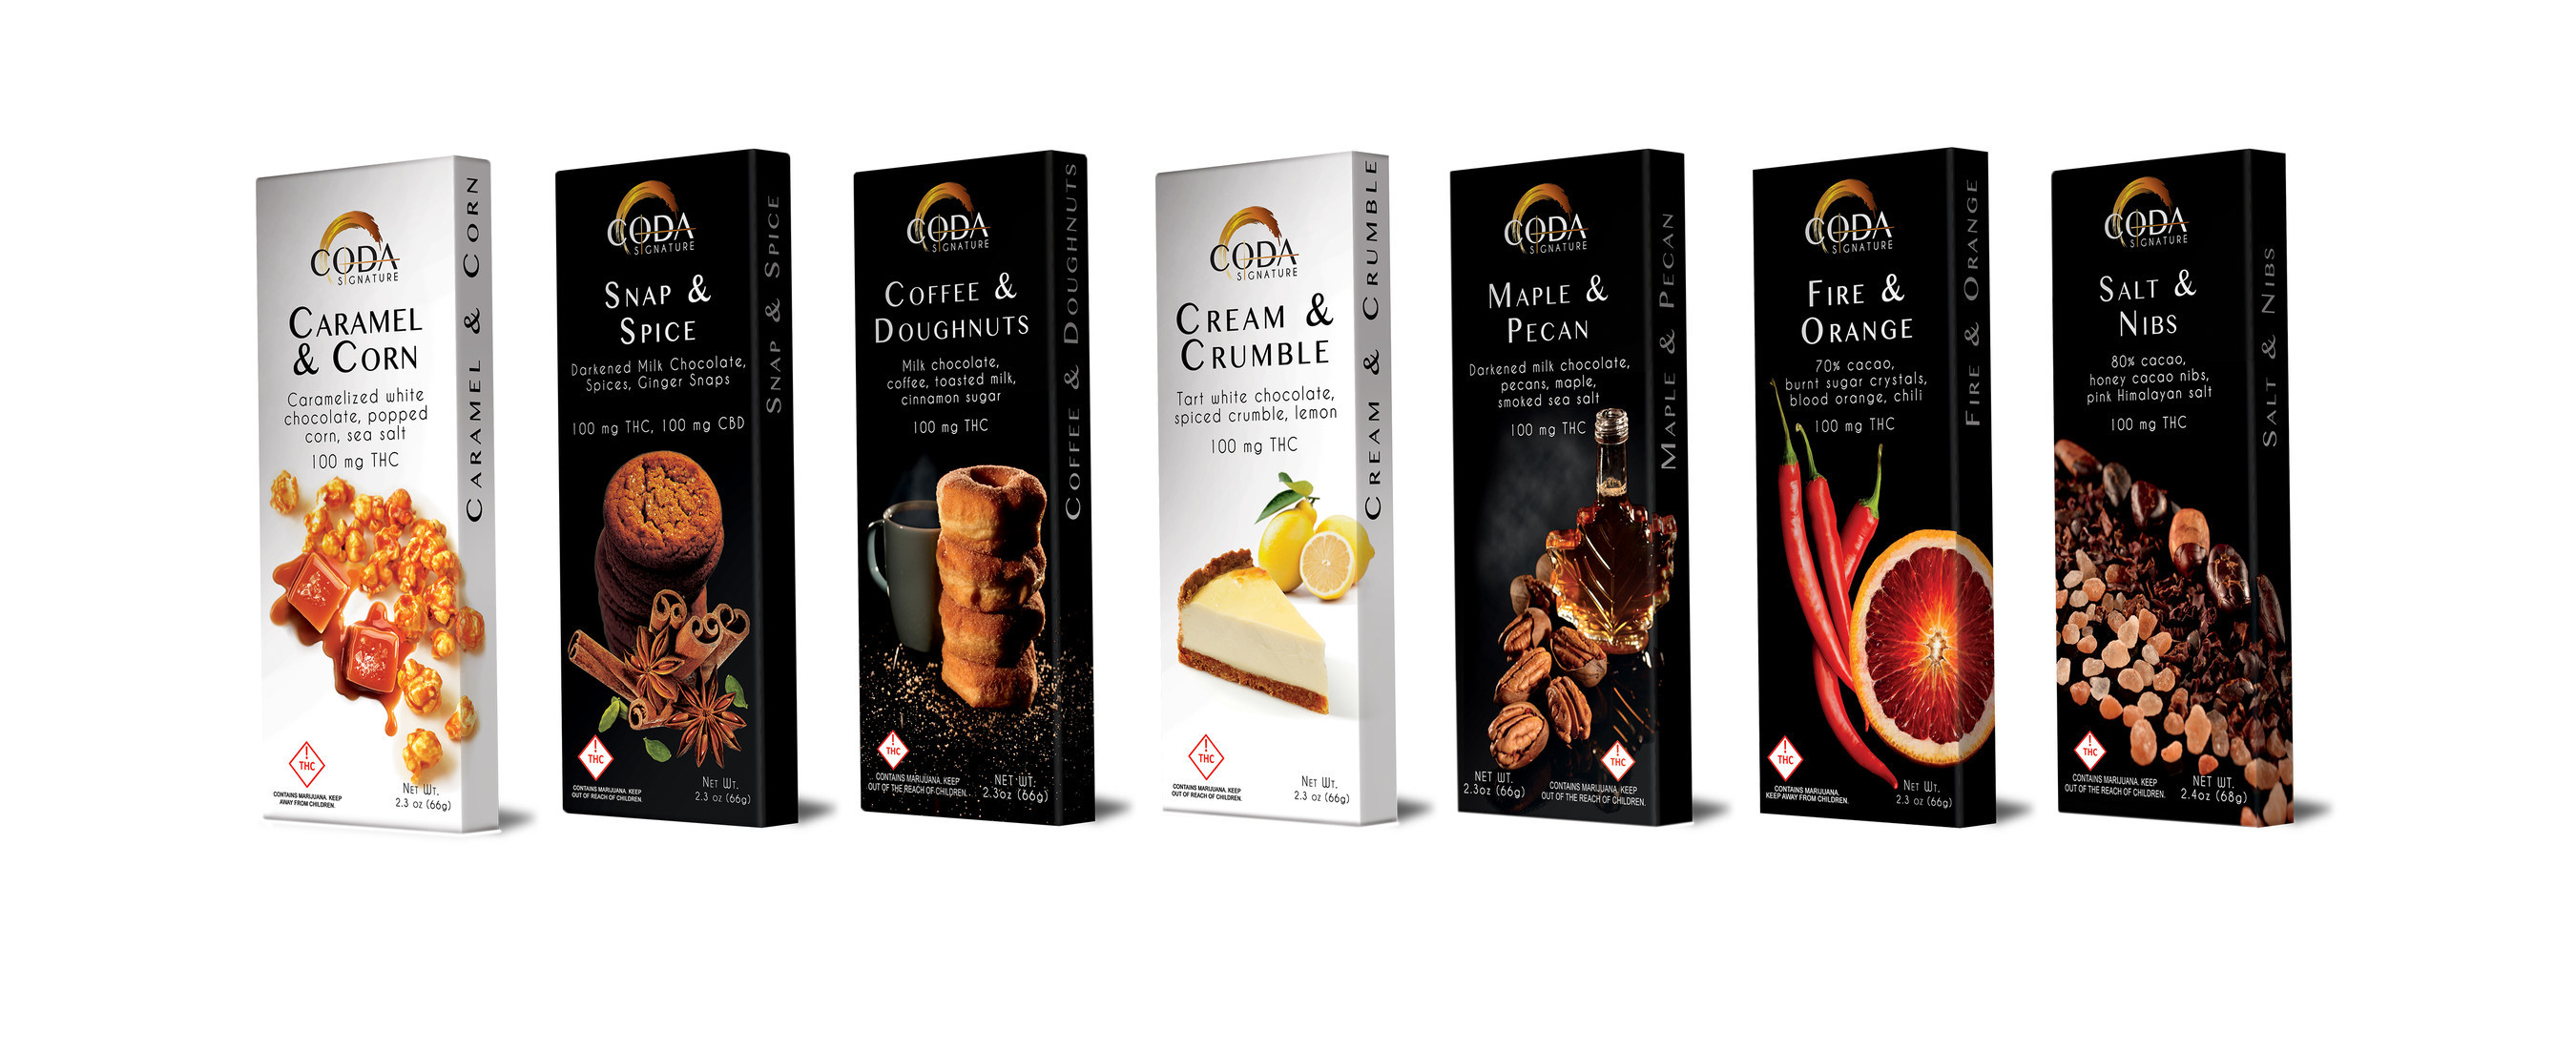 Coda Signature's Handcrafted Infused Chocolate Bars